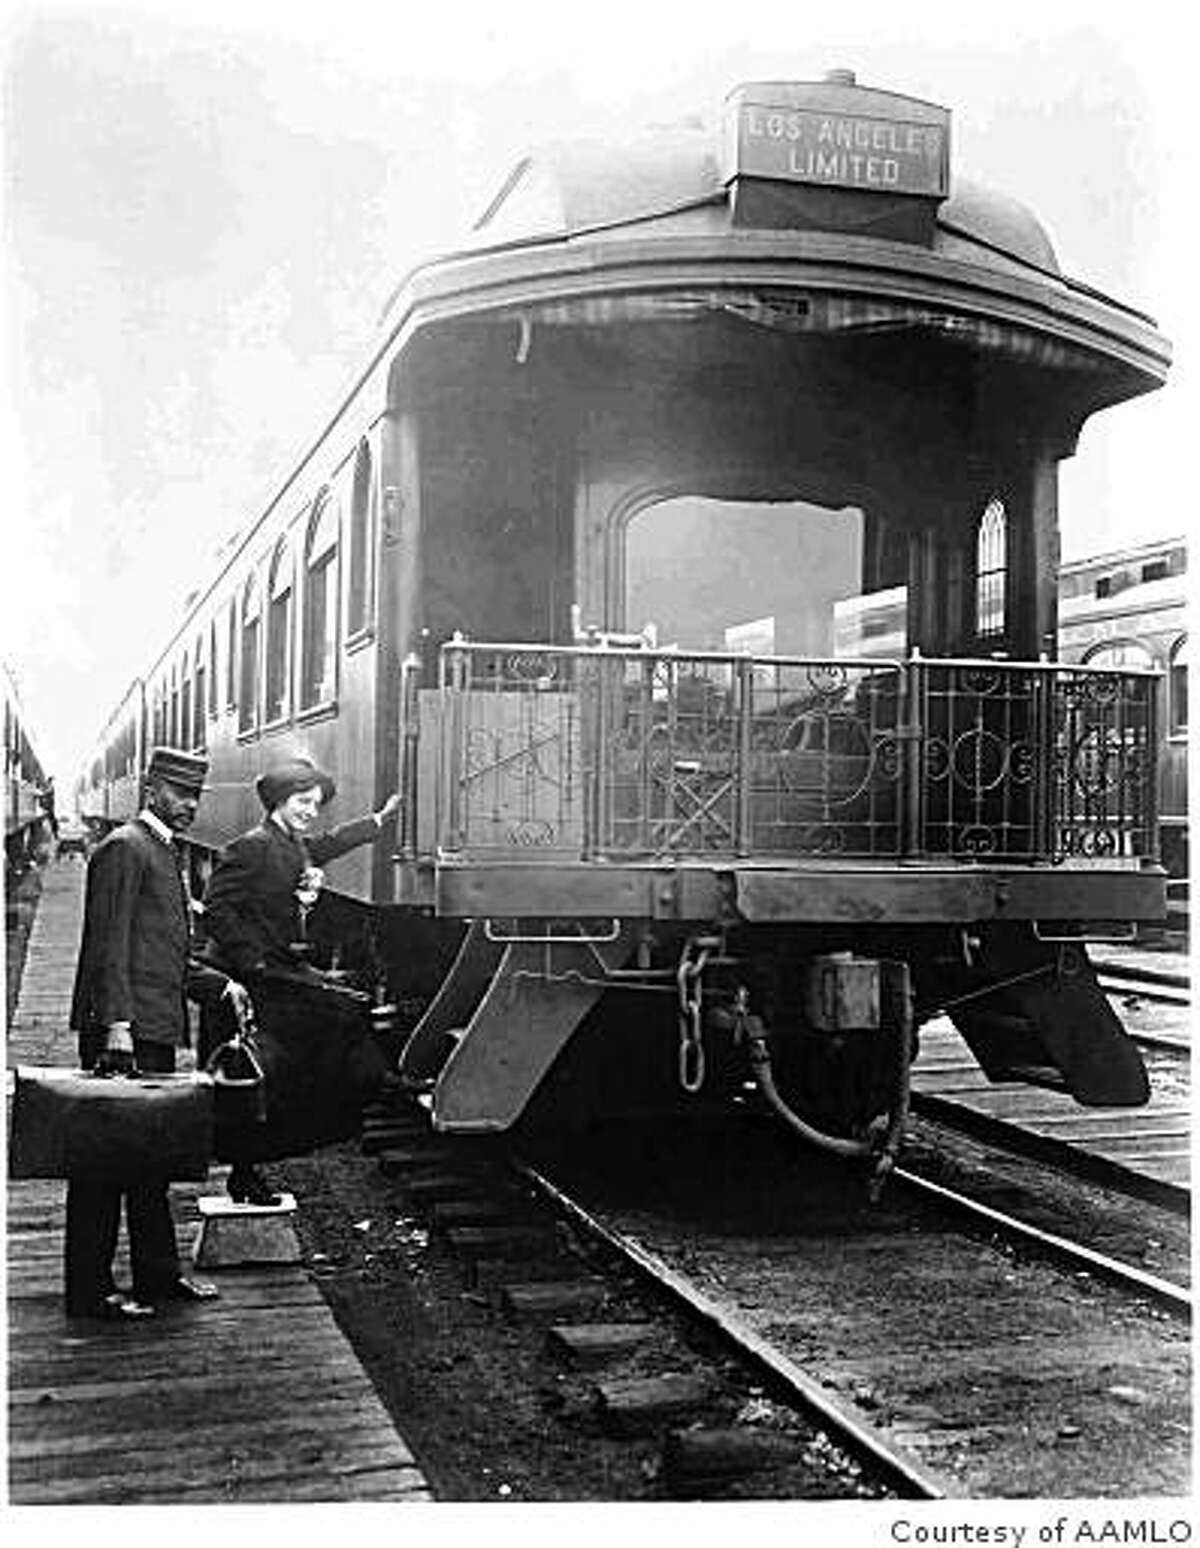 A porter helps a passenger board the observation car of the Los Angeles Limited, early 1900s.